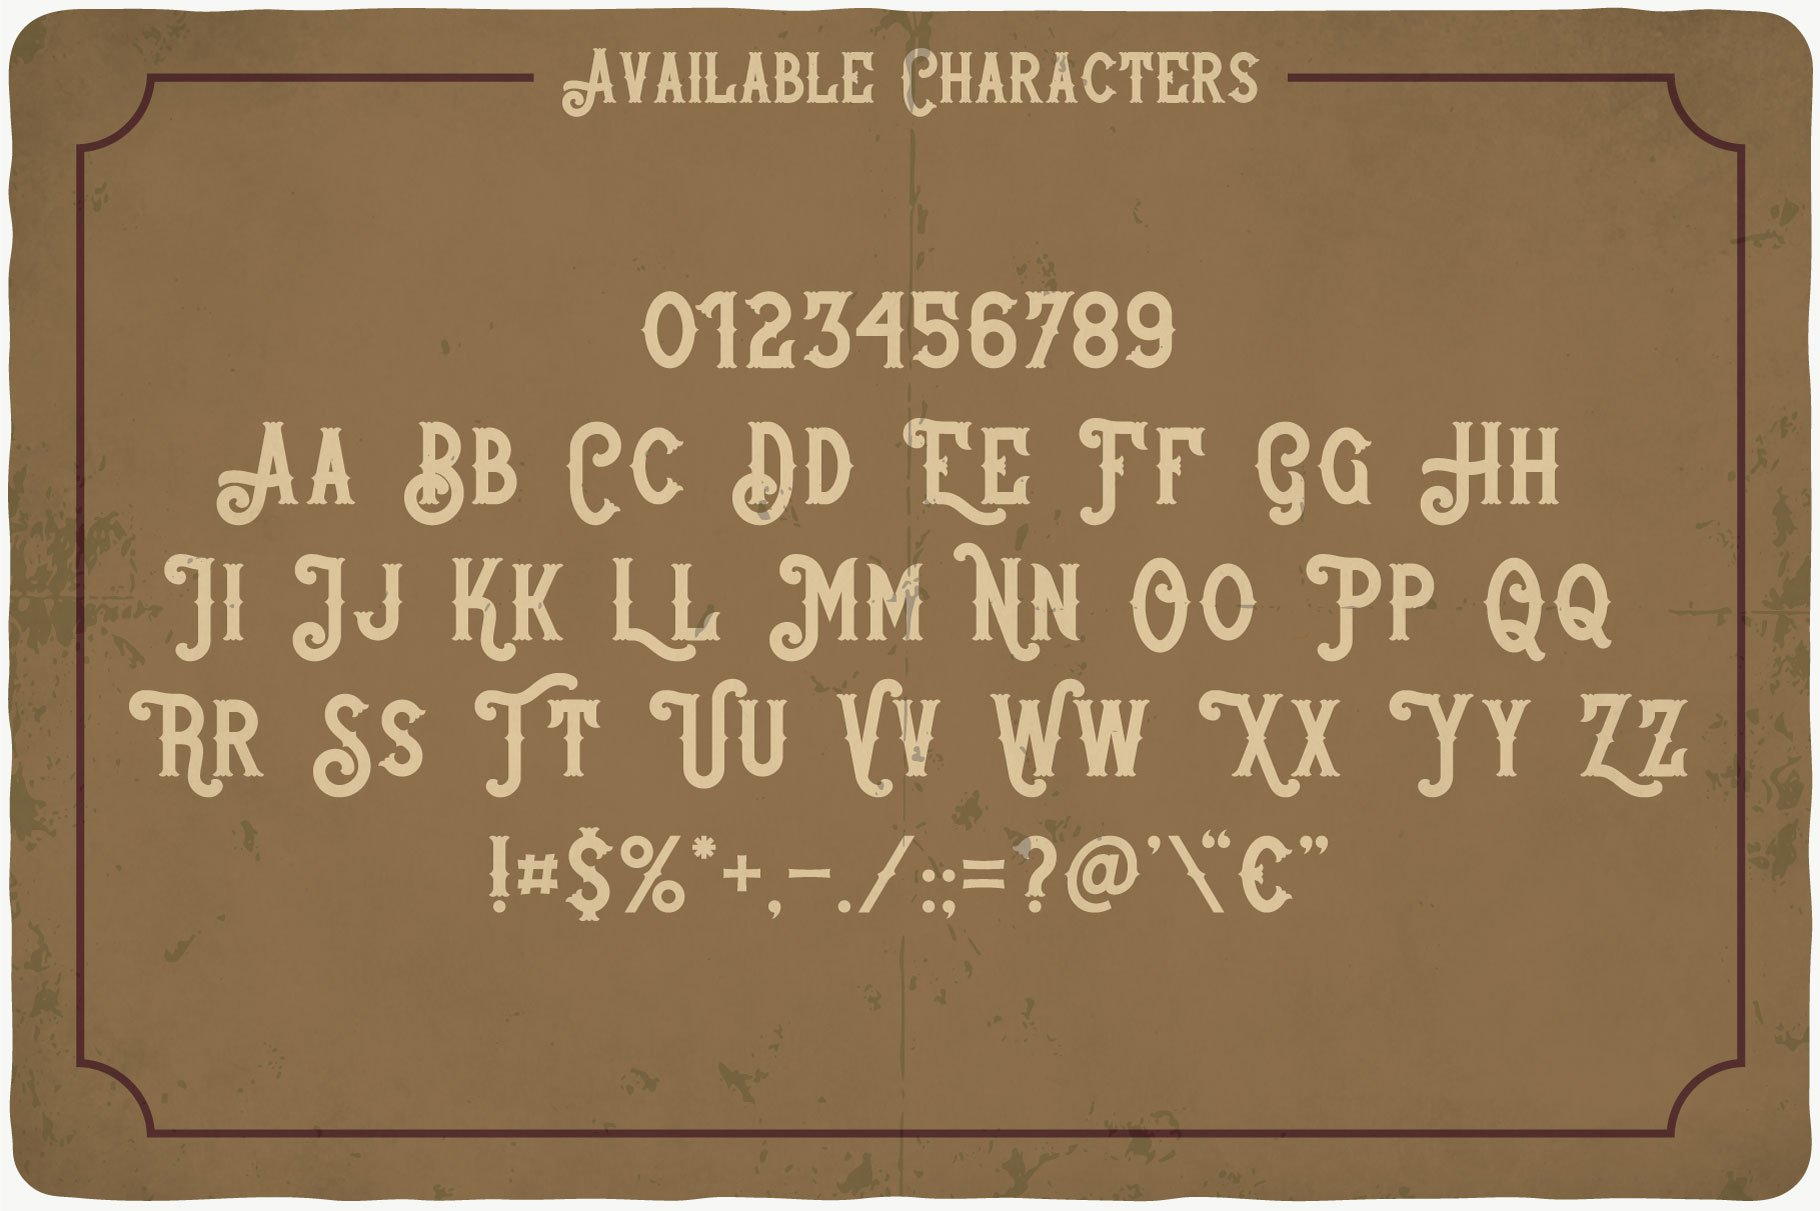 Whiskey Stones Typeface available characters.